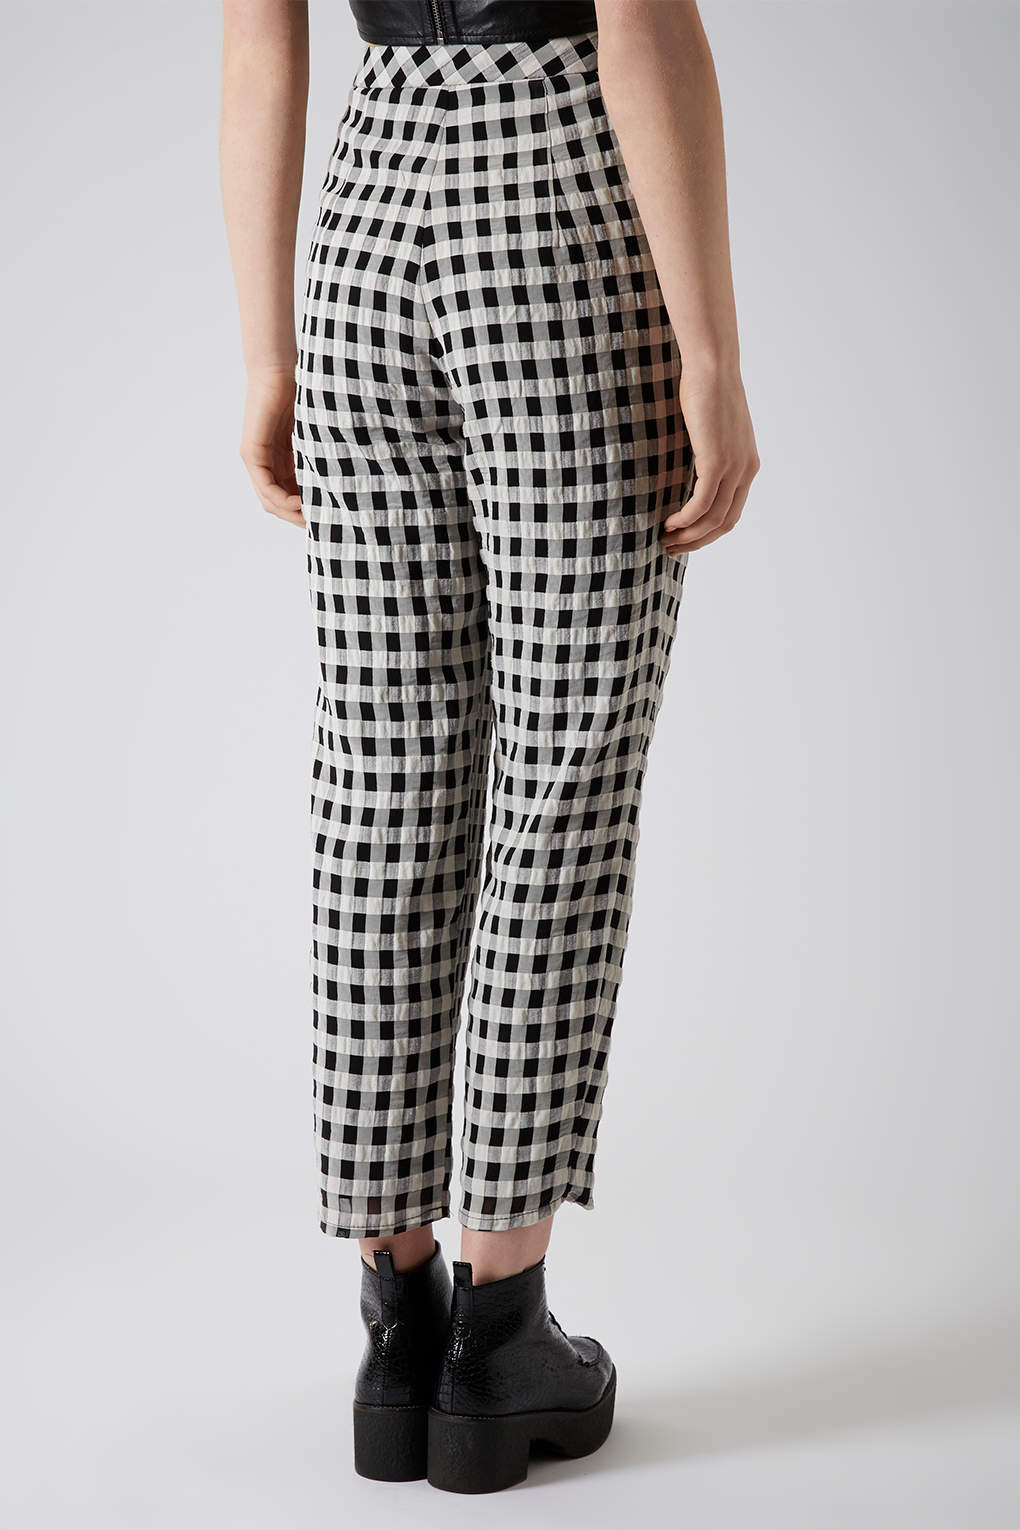 Lyst Topshop Crinkle Gingham Peg Trousers In Black